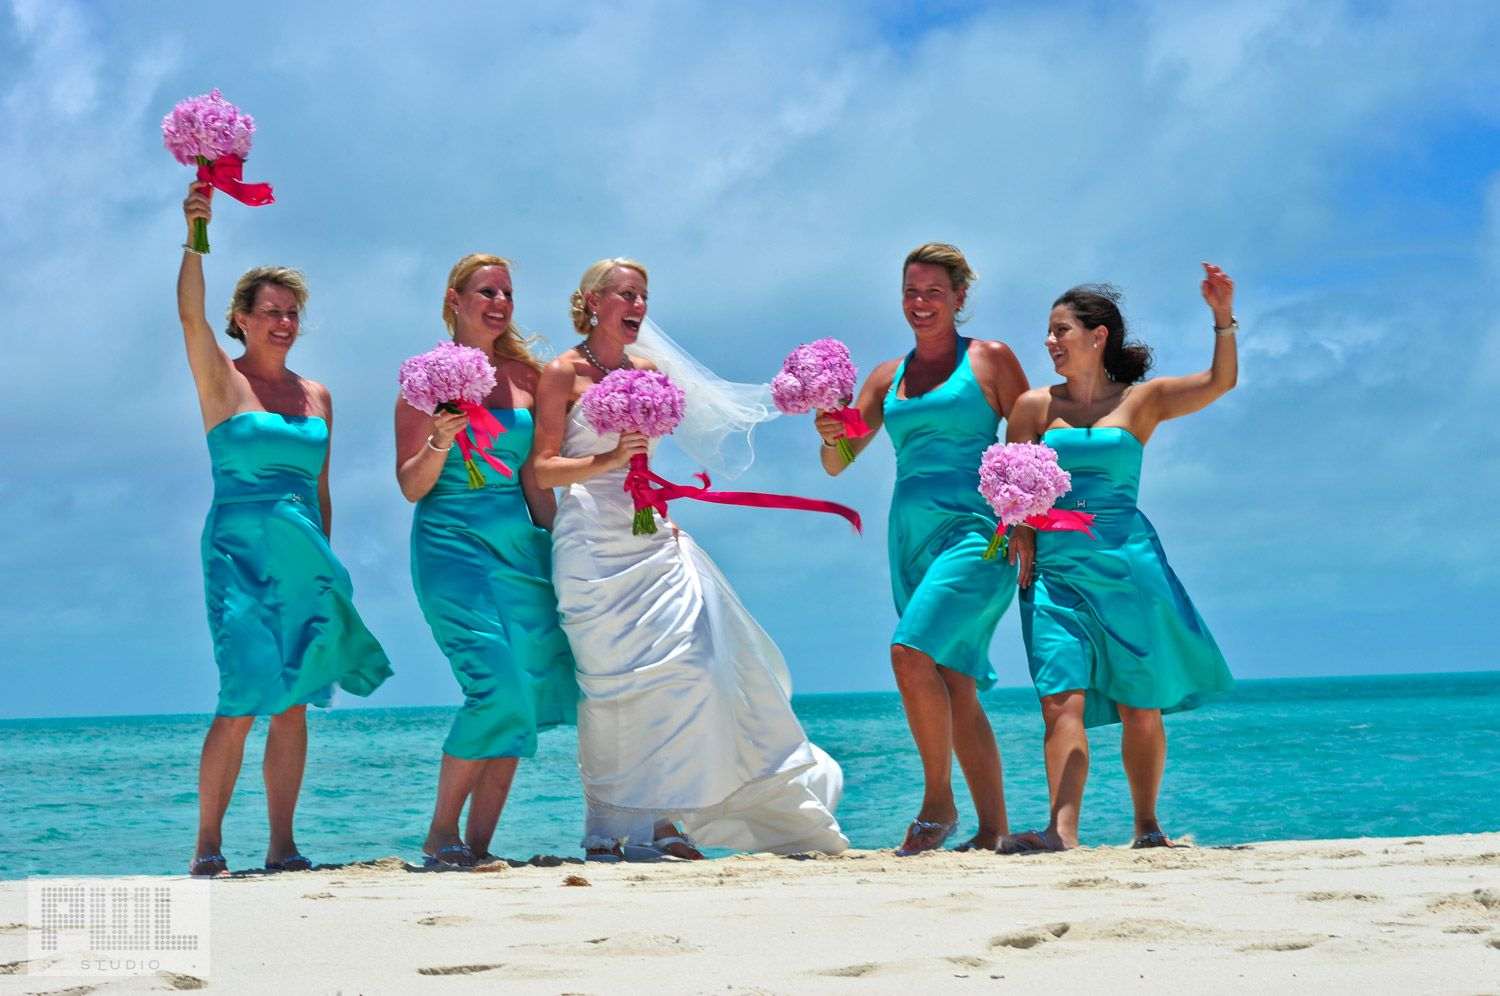 Pink and turquoise wedding theme ideas wedding dash blog post a line asymmetric beading floor length satin chiffon turquoise coral bridesmaid dresses with turquoise jewelry isnt at deaths door ombrellifo Images